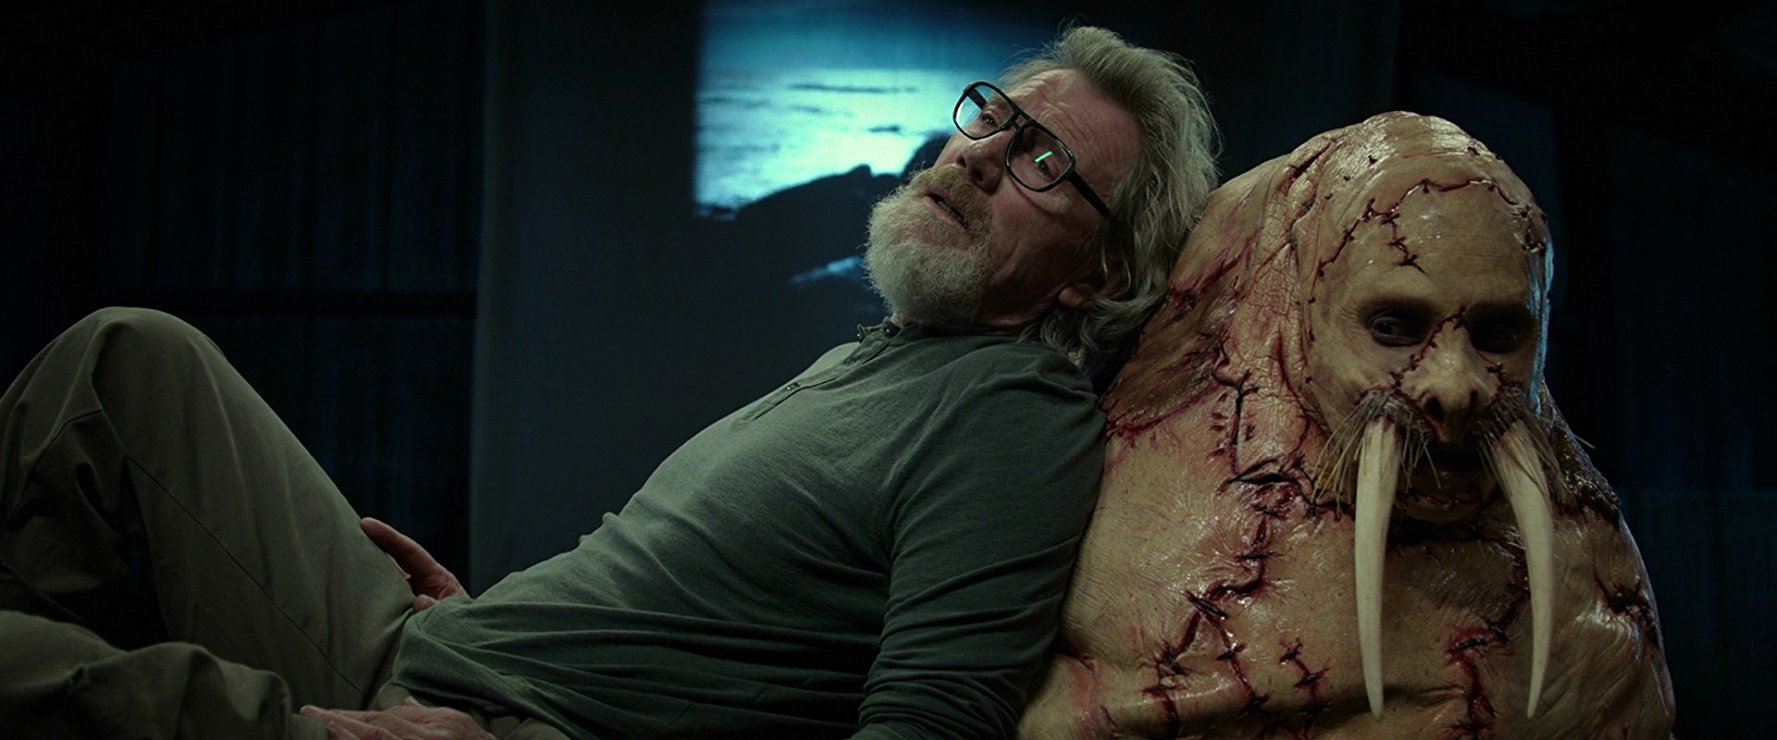 Michael Parks and Justin Long after being surgically transformed into a walrus in Tusk (2014)